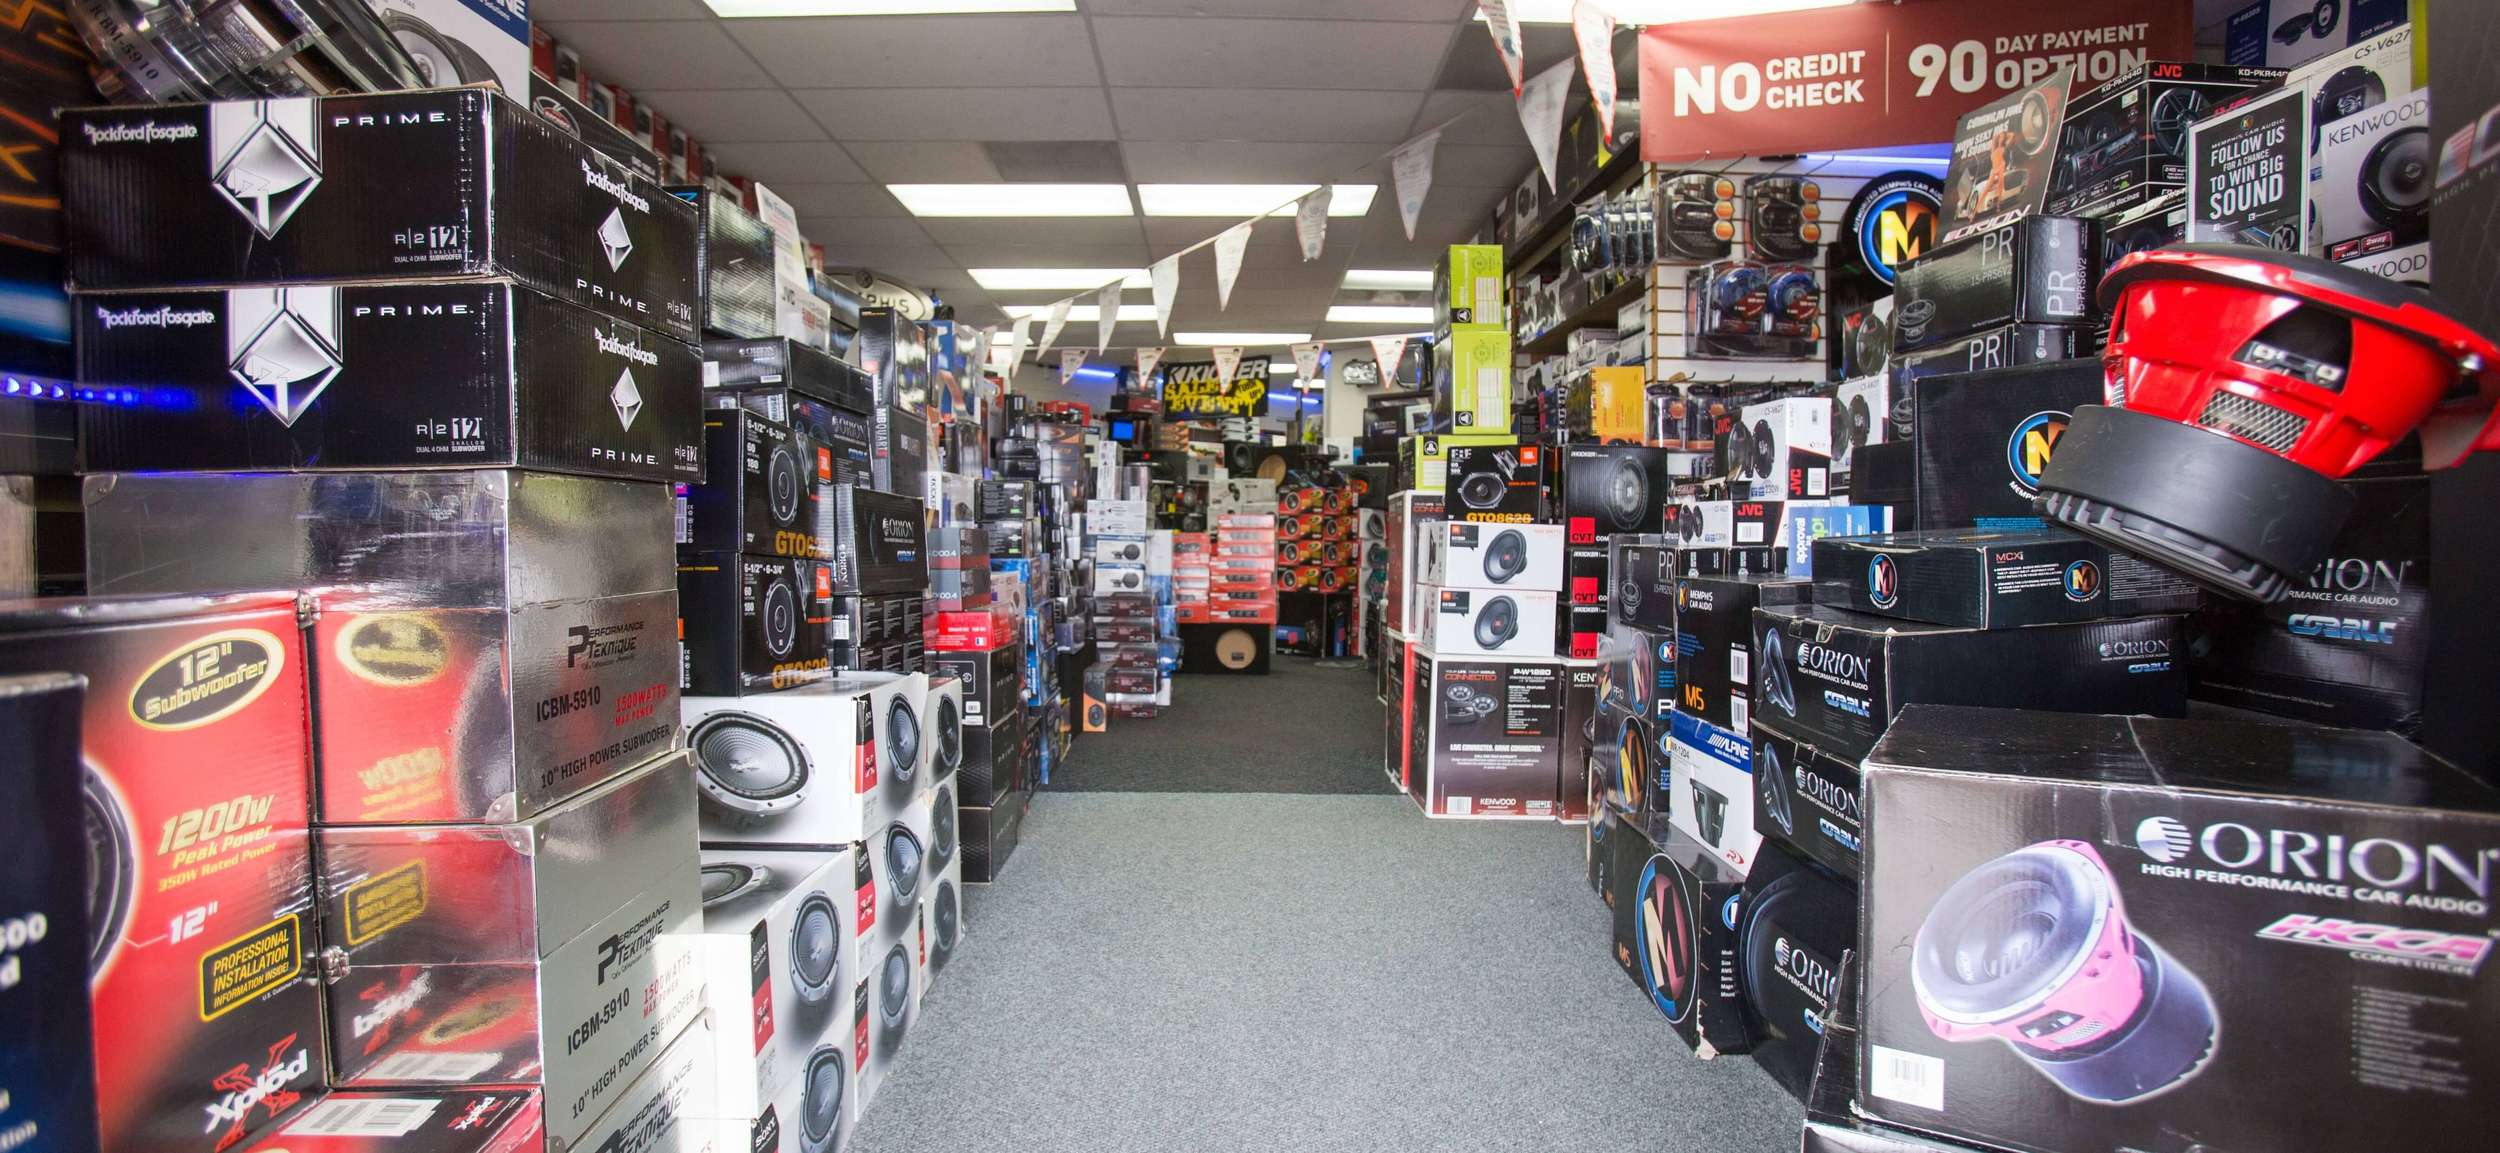 Car Stereo City in Kearny Mesa offers all of the best brands in car audio, car stereo, car speaker systems, car video, security systems and more. Come to our San Diego location today for great prices on car audio.